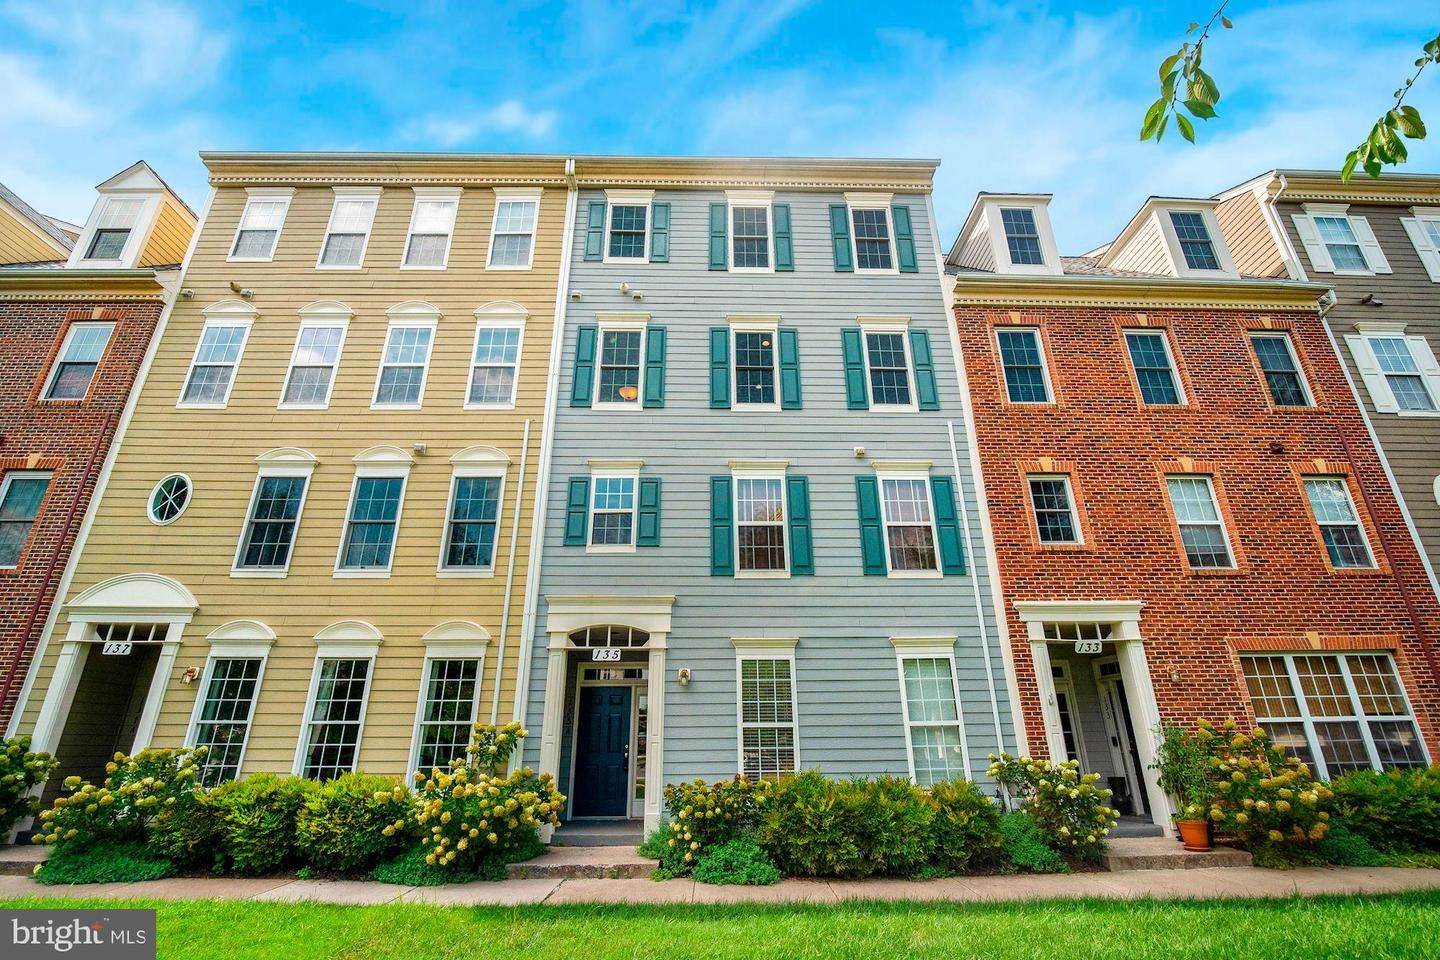 Photo of 135 CHEVY CHASE ST #A, GAITHERSBURG, MD 20878 (MLS # MDMC725442)